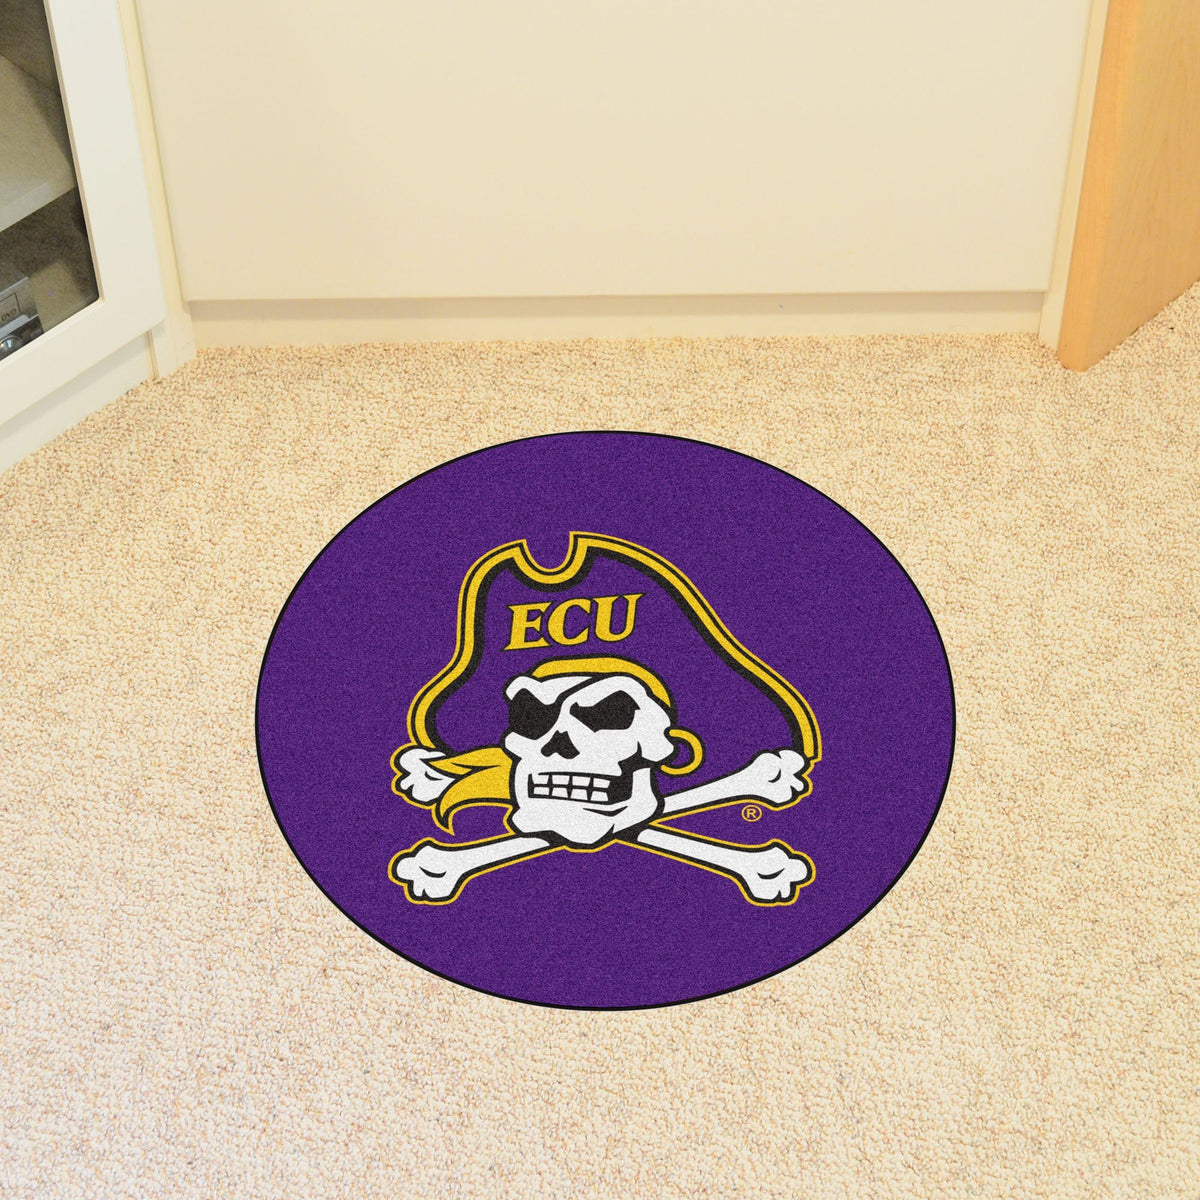 Collegiate - Round Mat Collegiate Mats, Round Mats, Round Mat, Collegiate, Home Fan Mats East Carolina